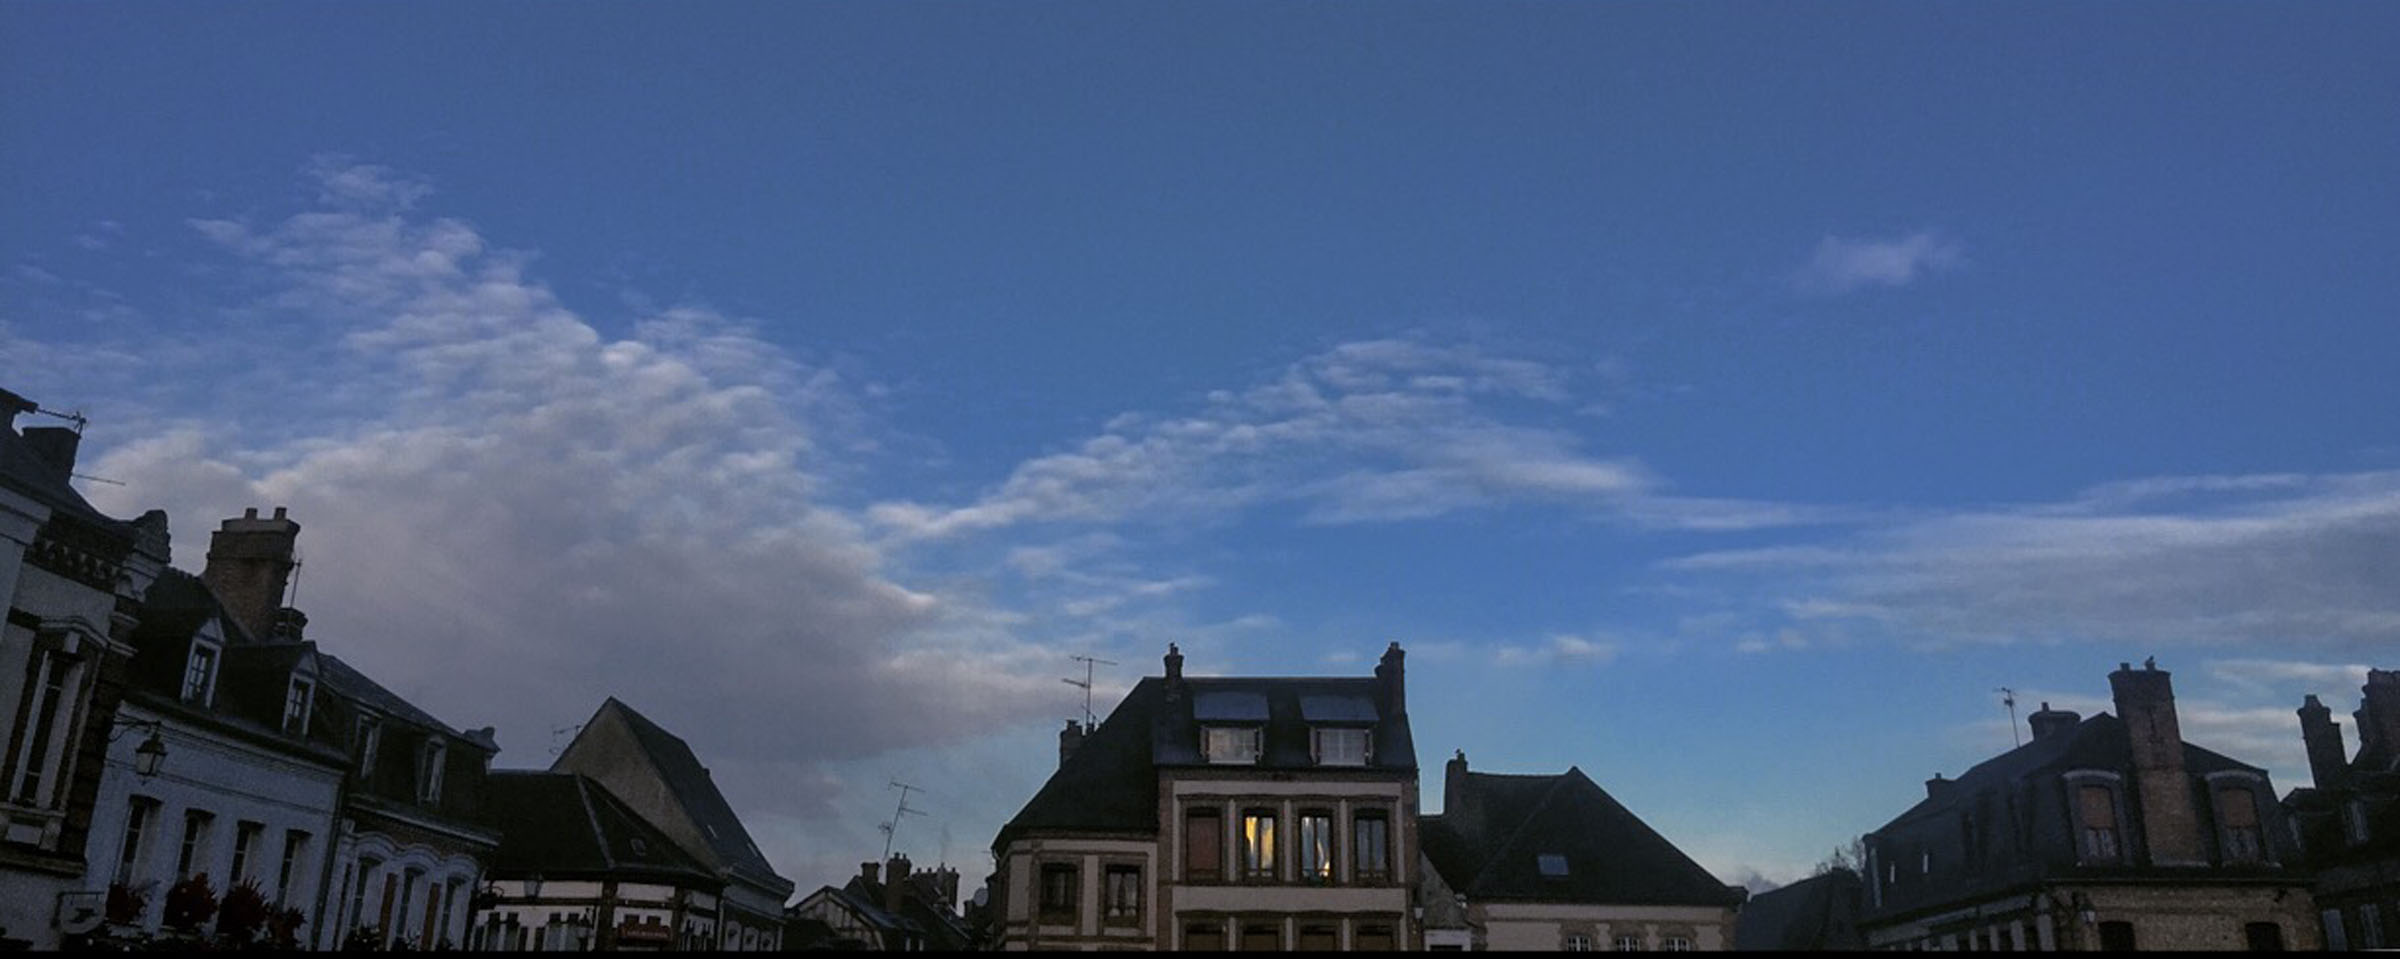 Foto Transvideo 1 - Verneuil-Sur-Avre.